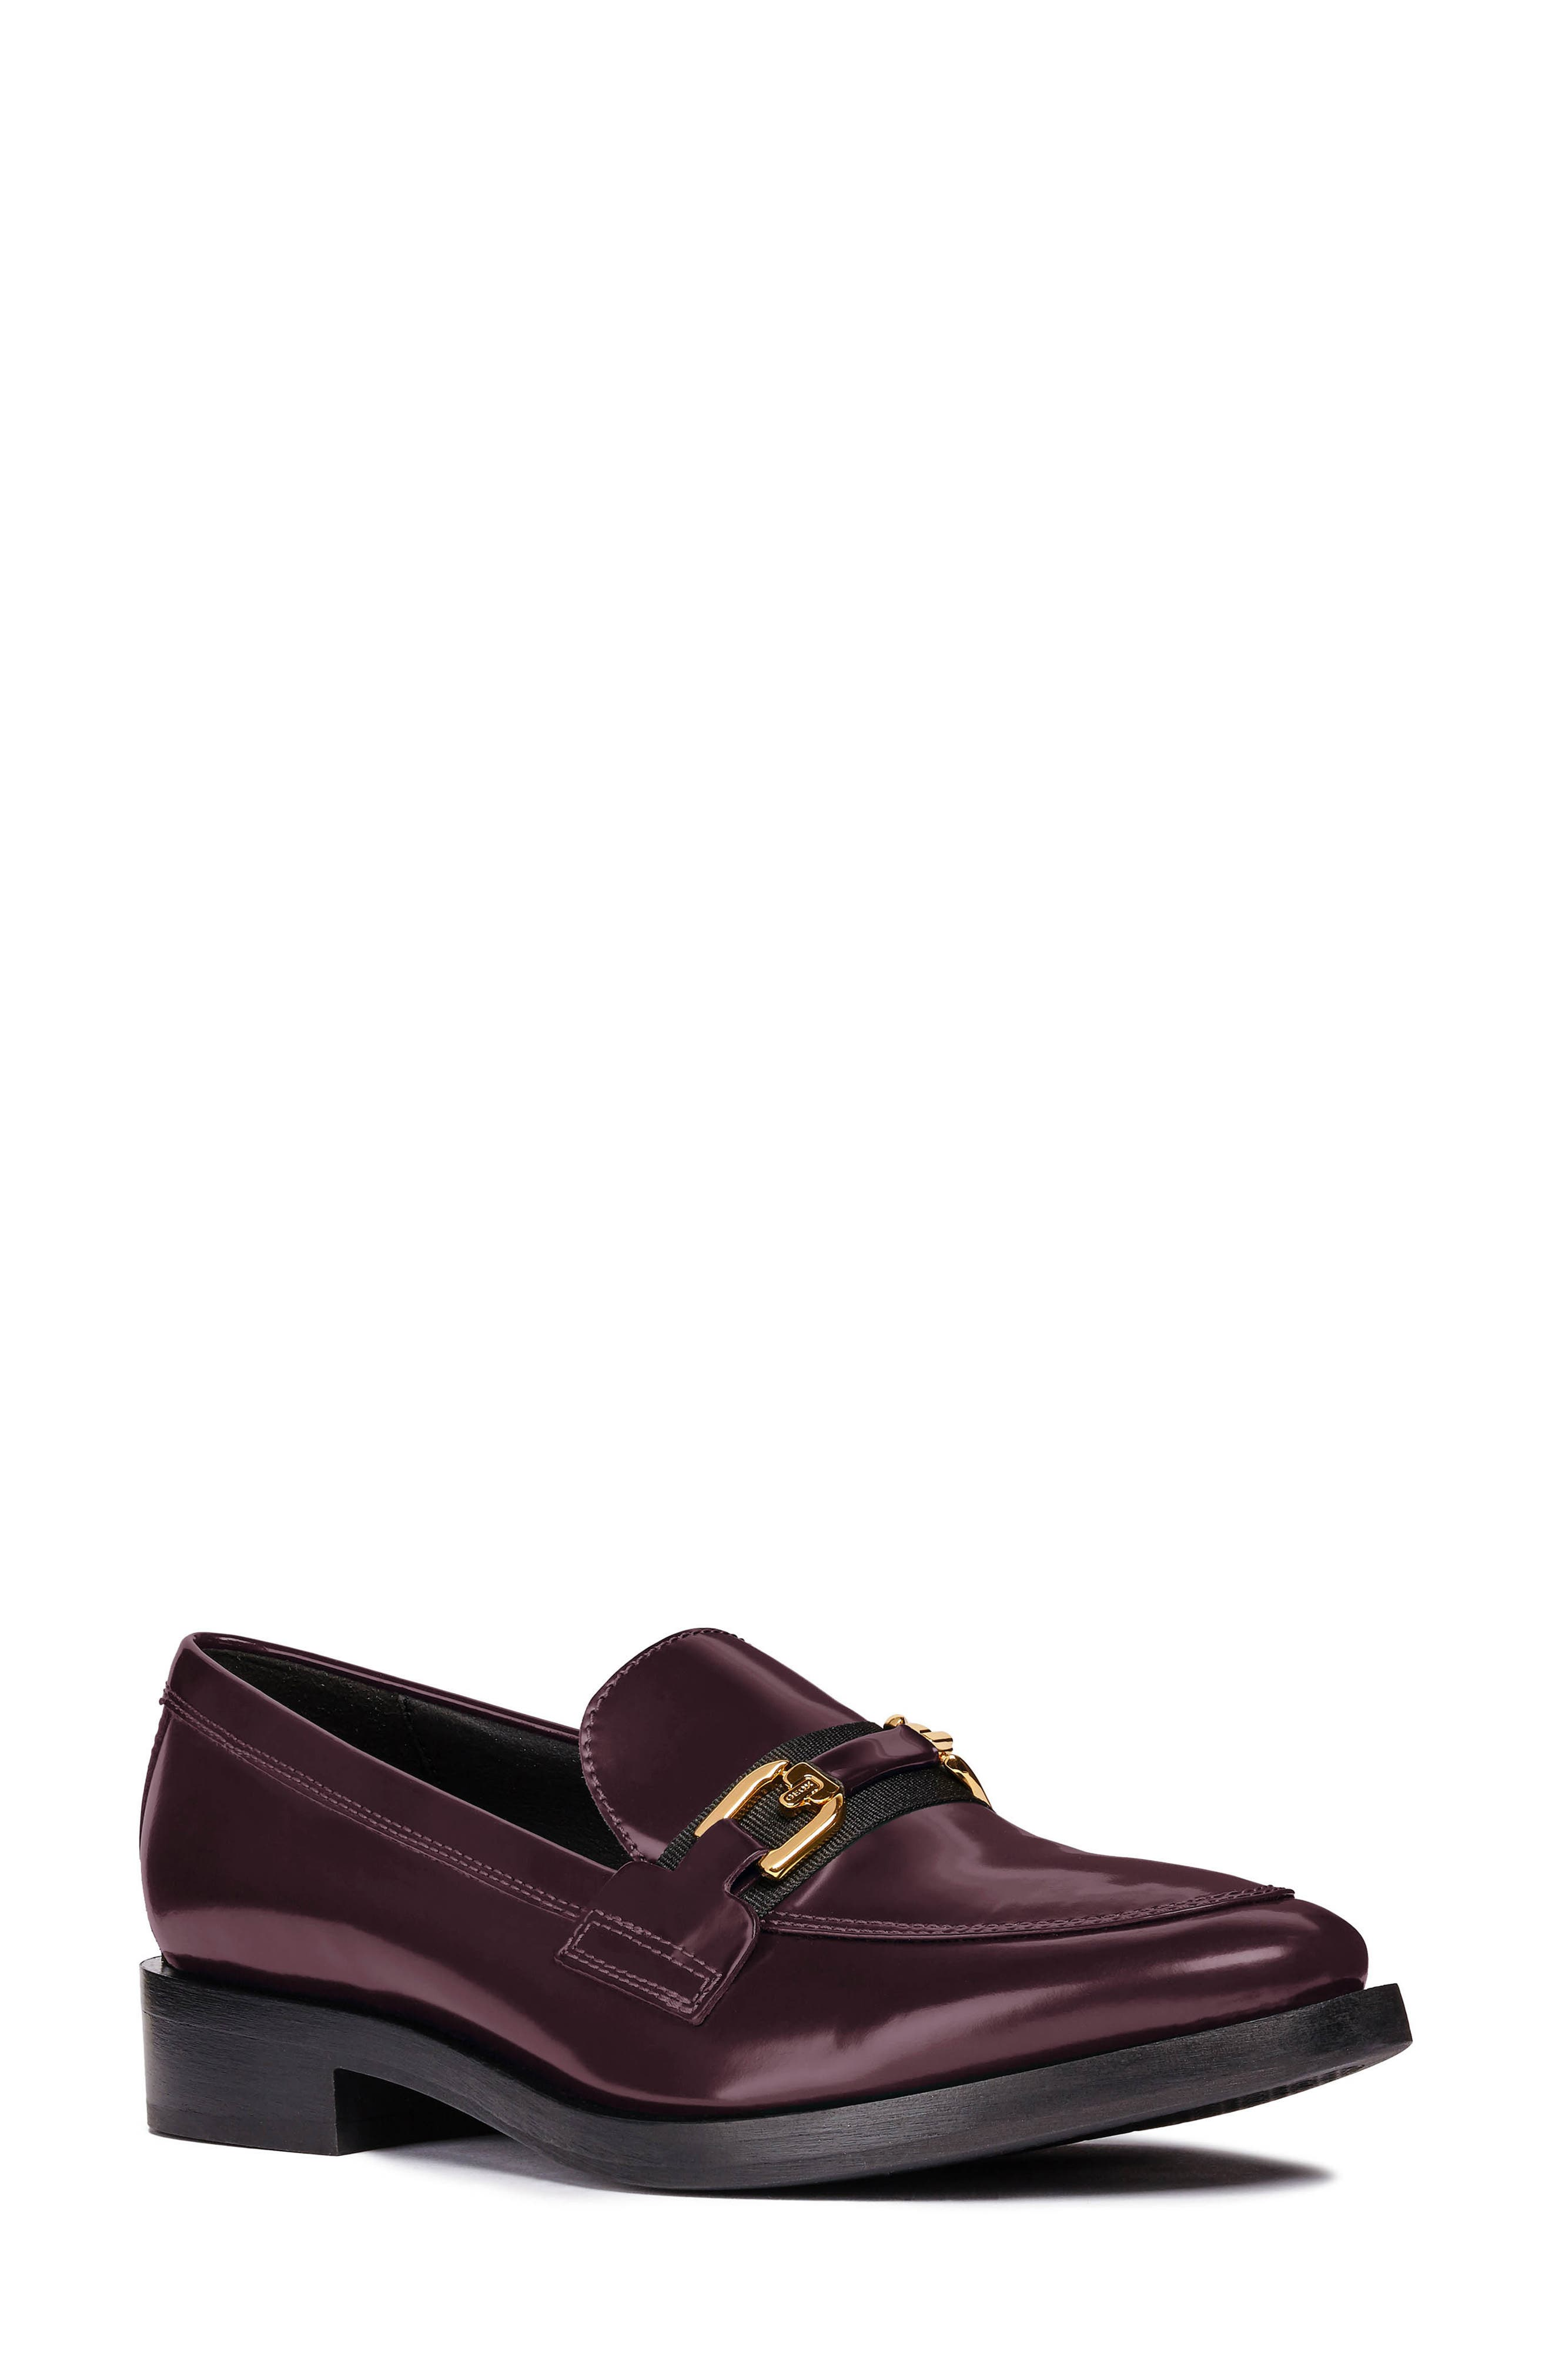 Geox Brogue Loafer, Burgundy